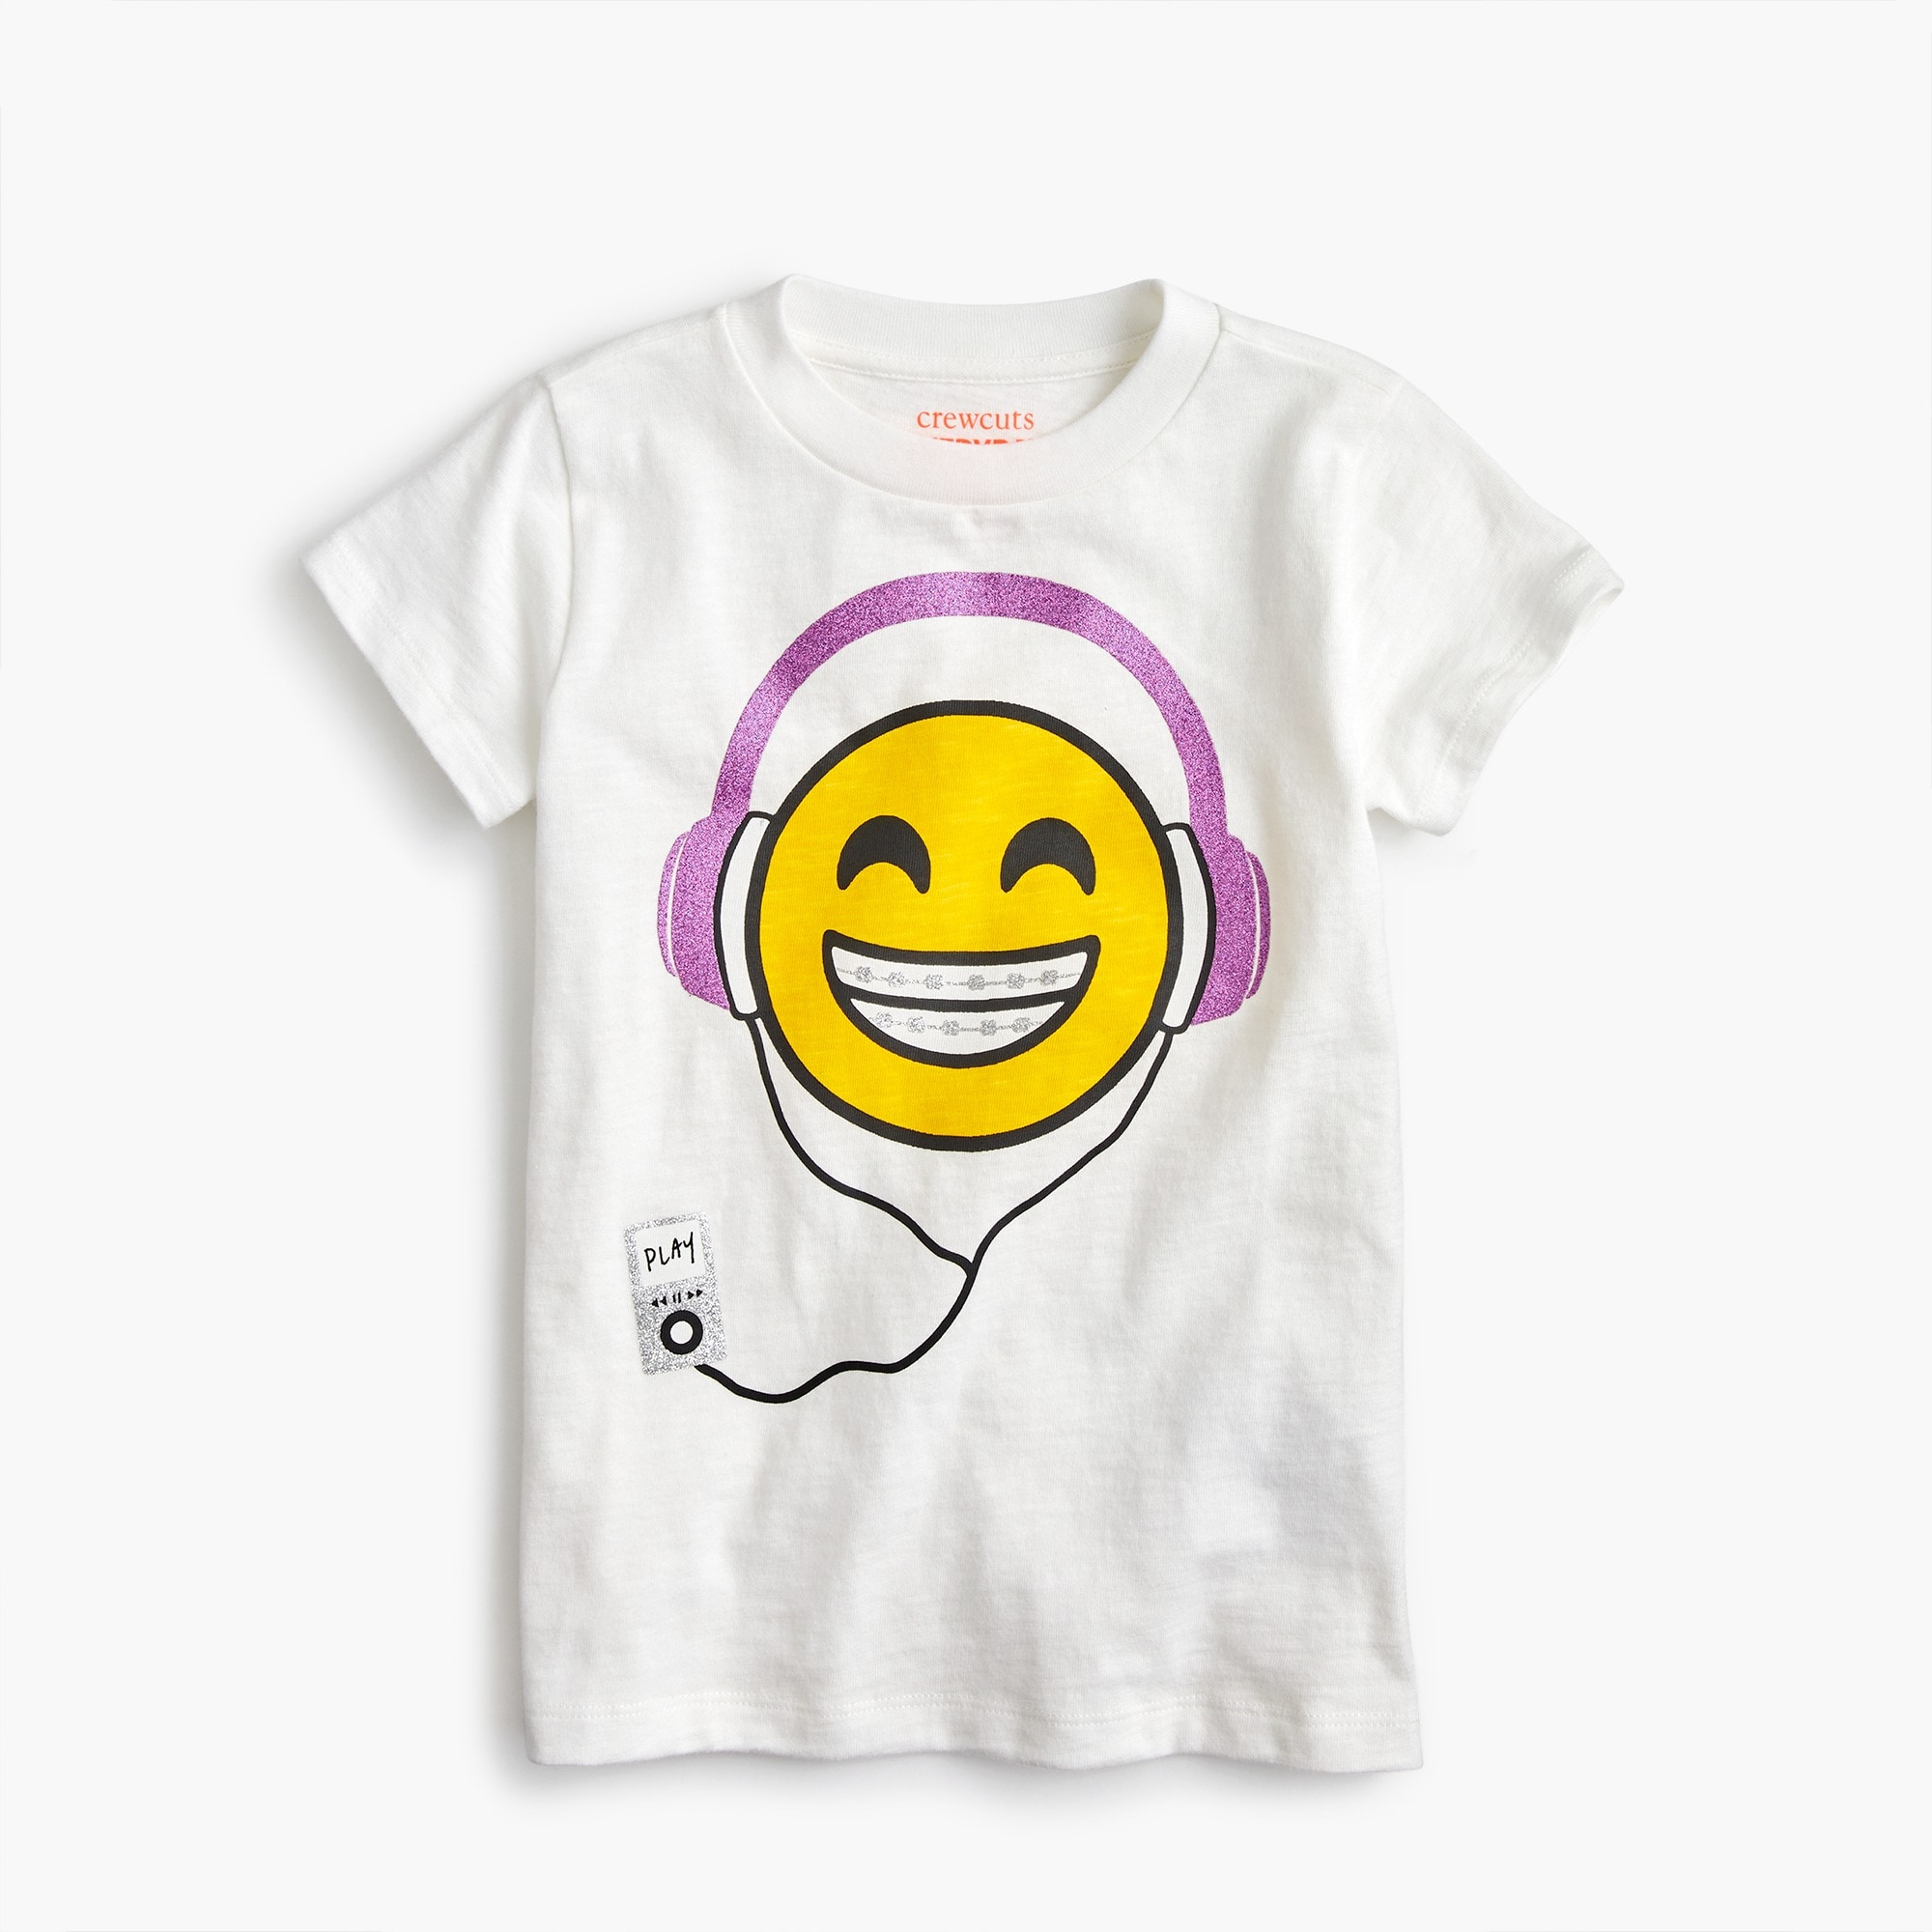 Image 2 for Girls' headphone-wearing emoji T-shirt